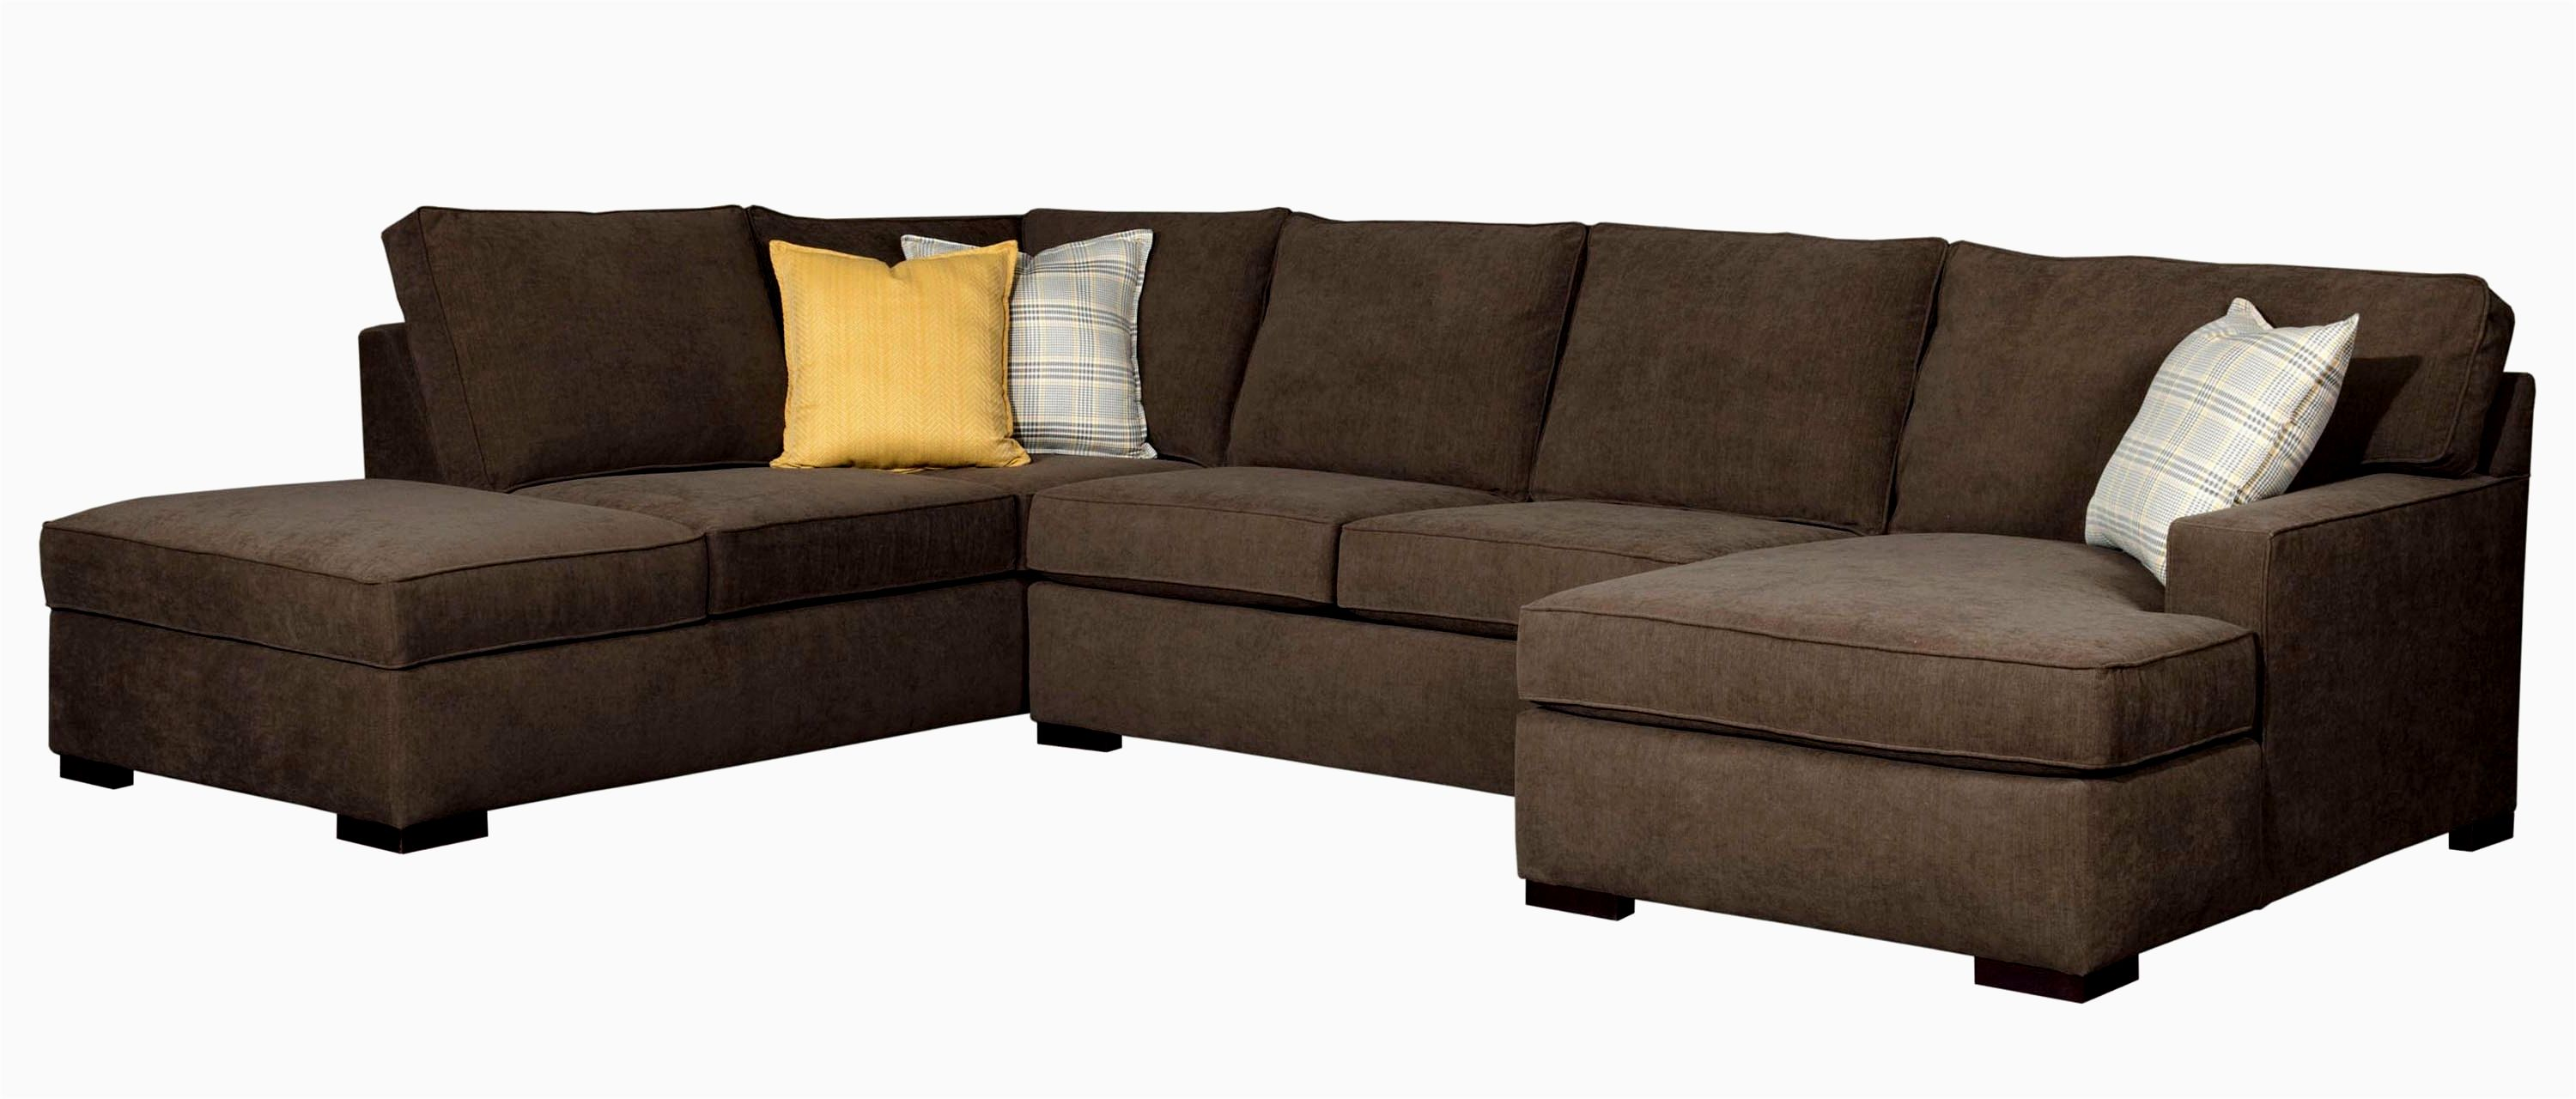 fresh reclining sectional sofas design-Finest Reclining Sectional sofas Layout